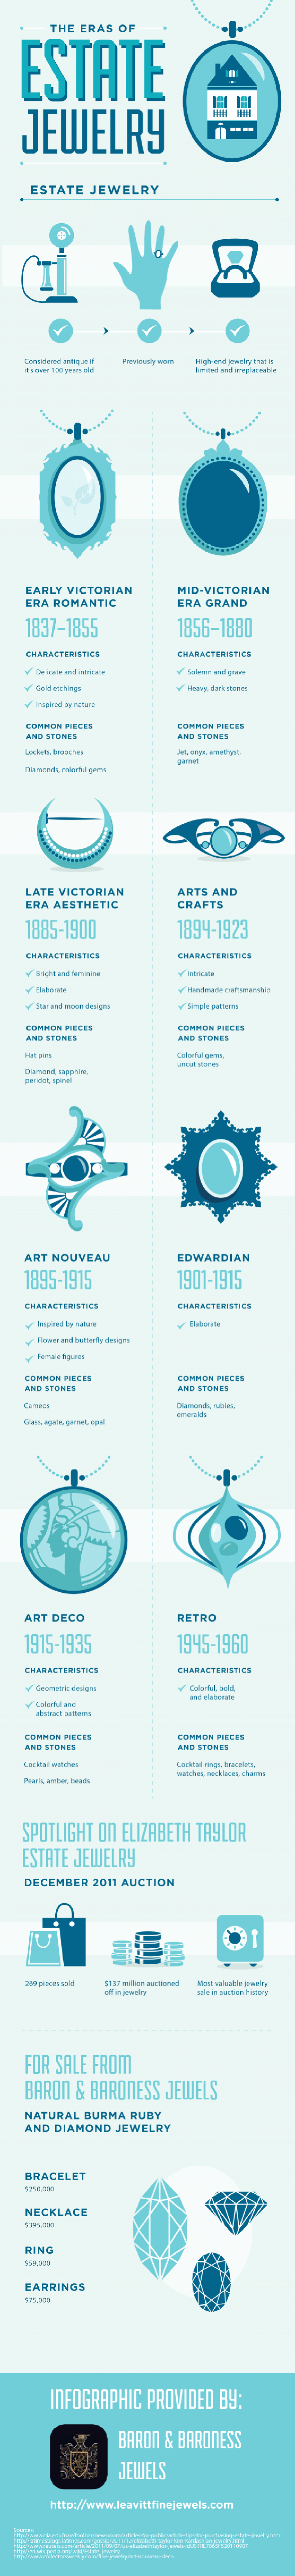 The Eras Of Estate Jewelry Infographic